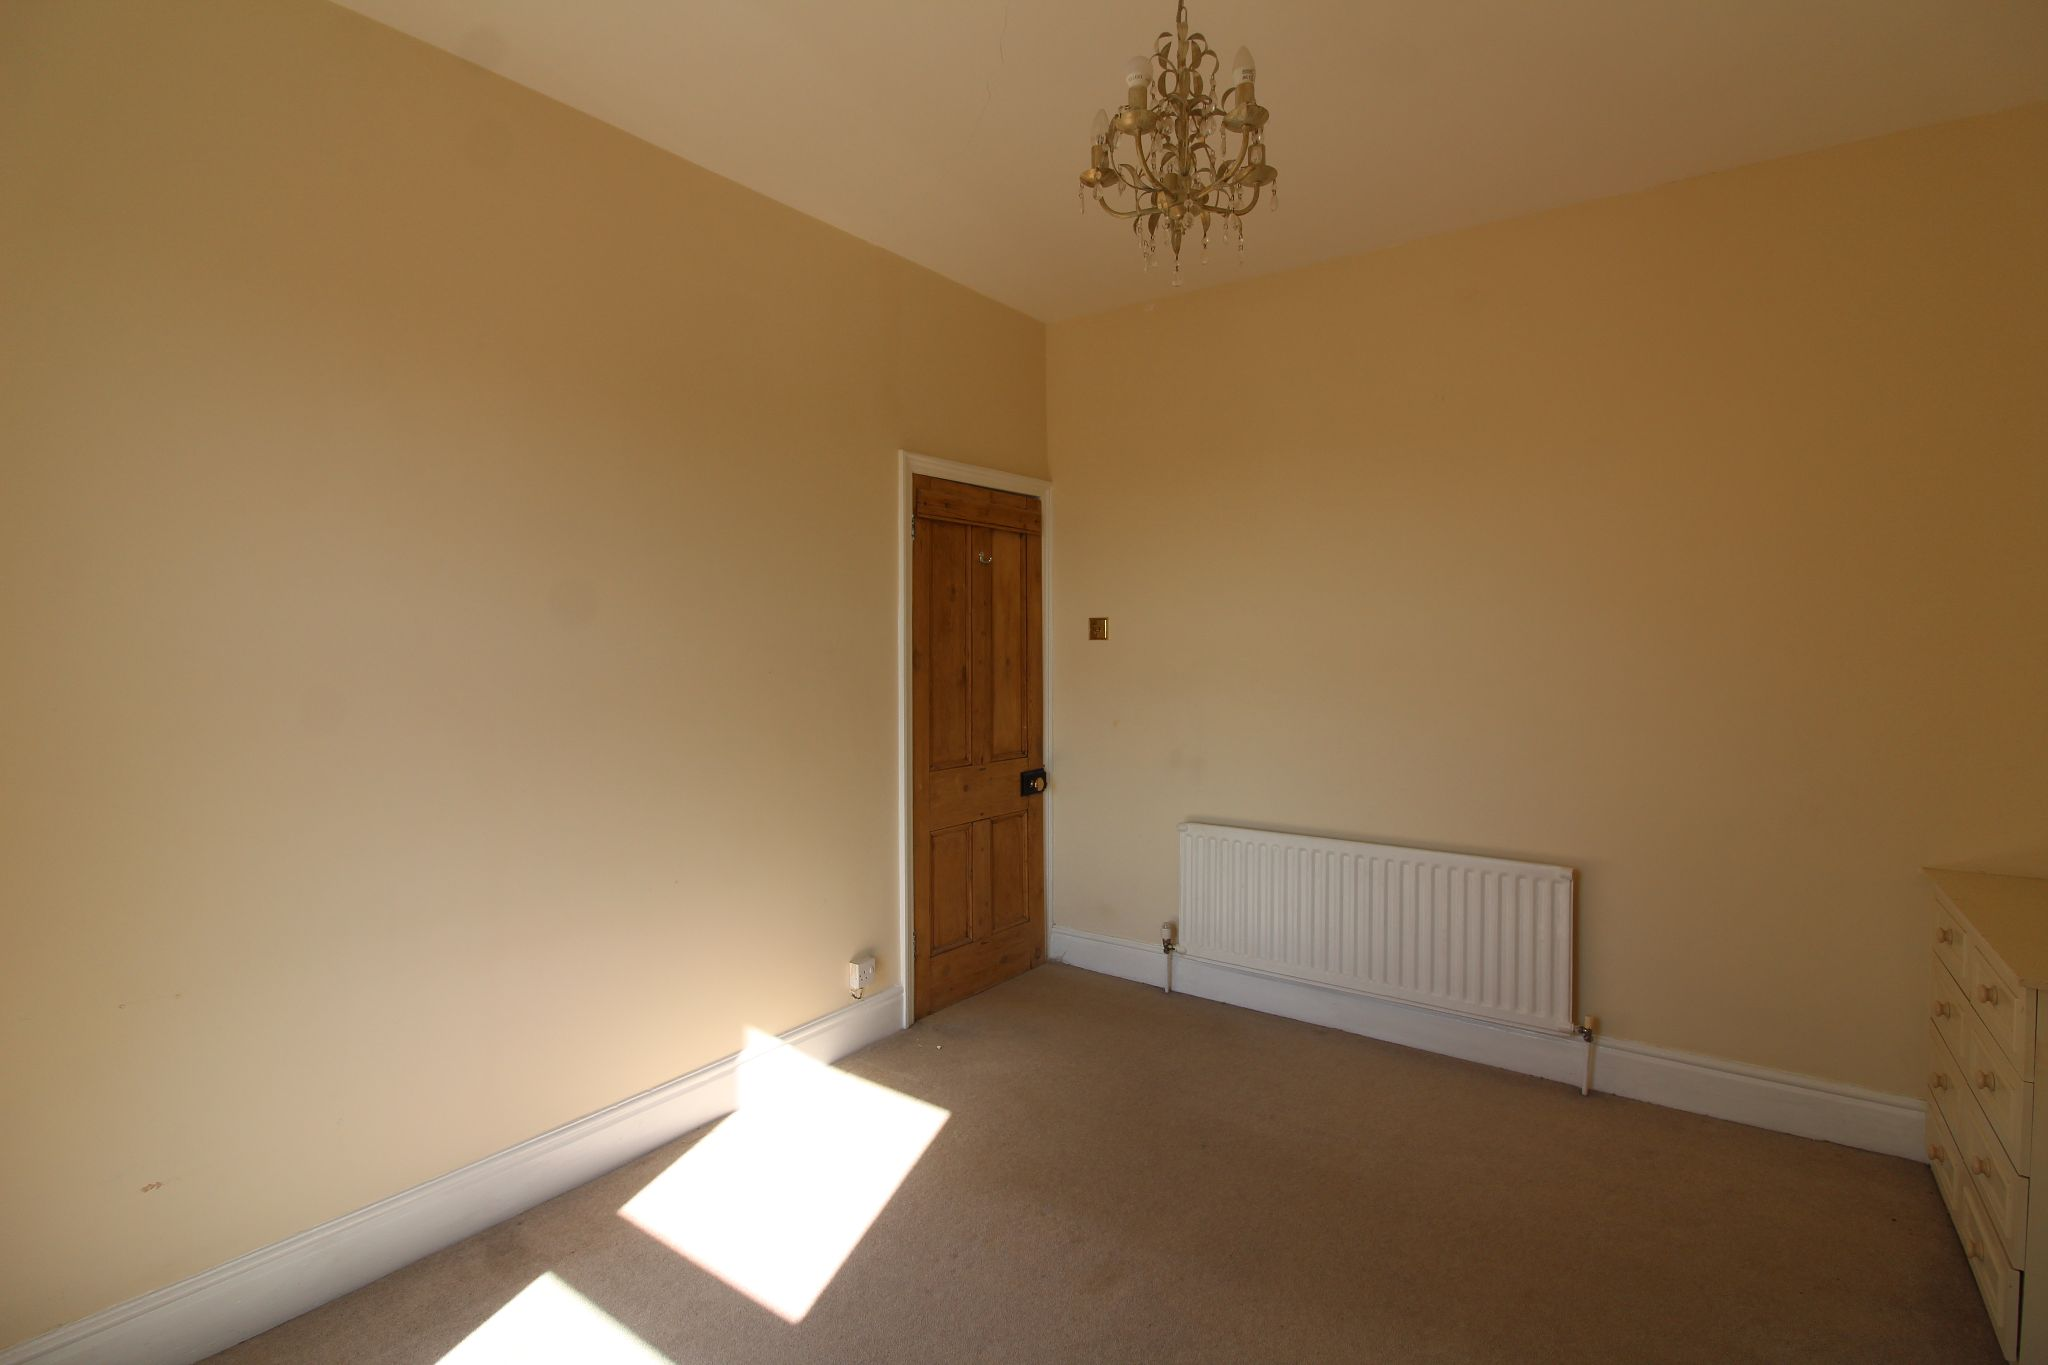 4 bedroom mid terraced house Sale Agreed in Willington - Photograph 32.